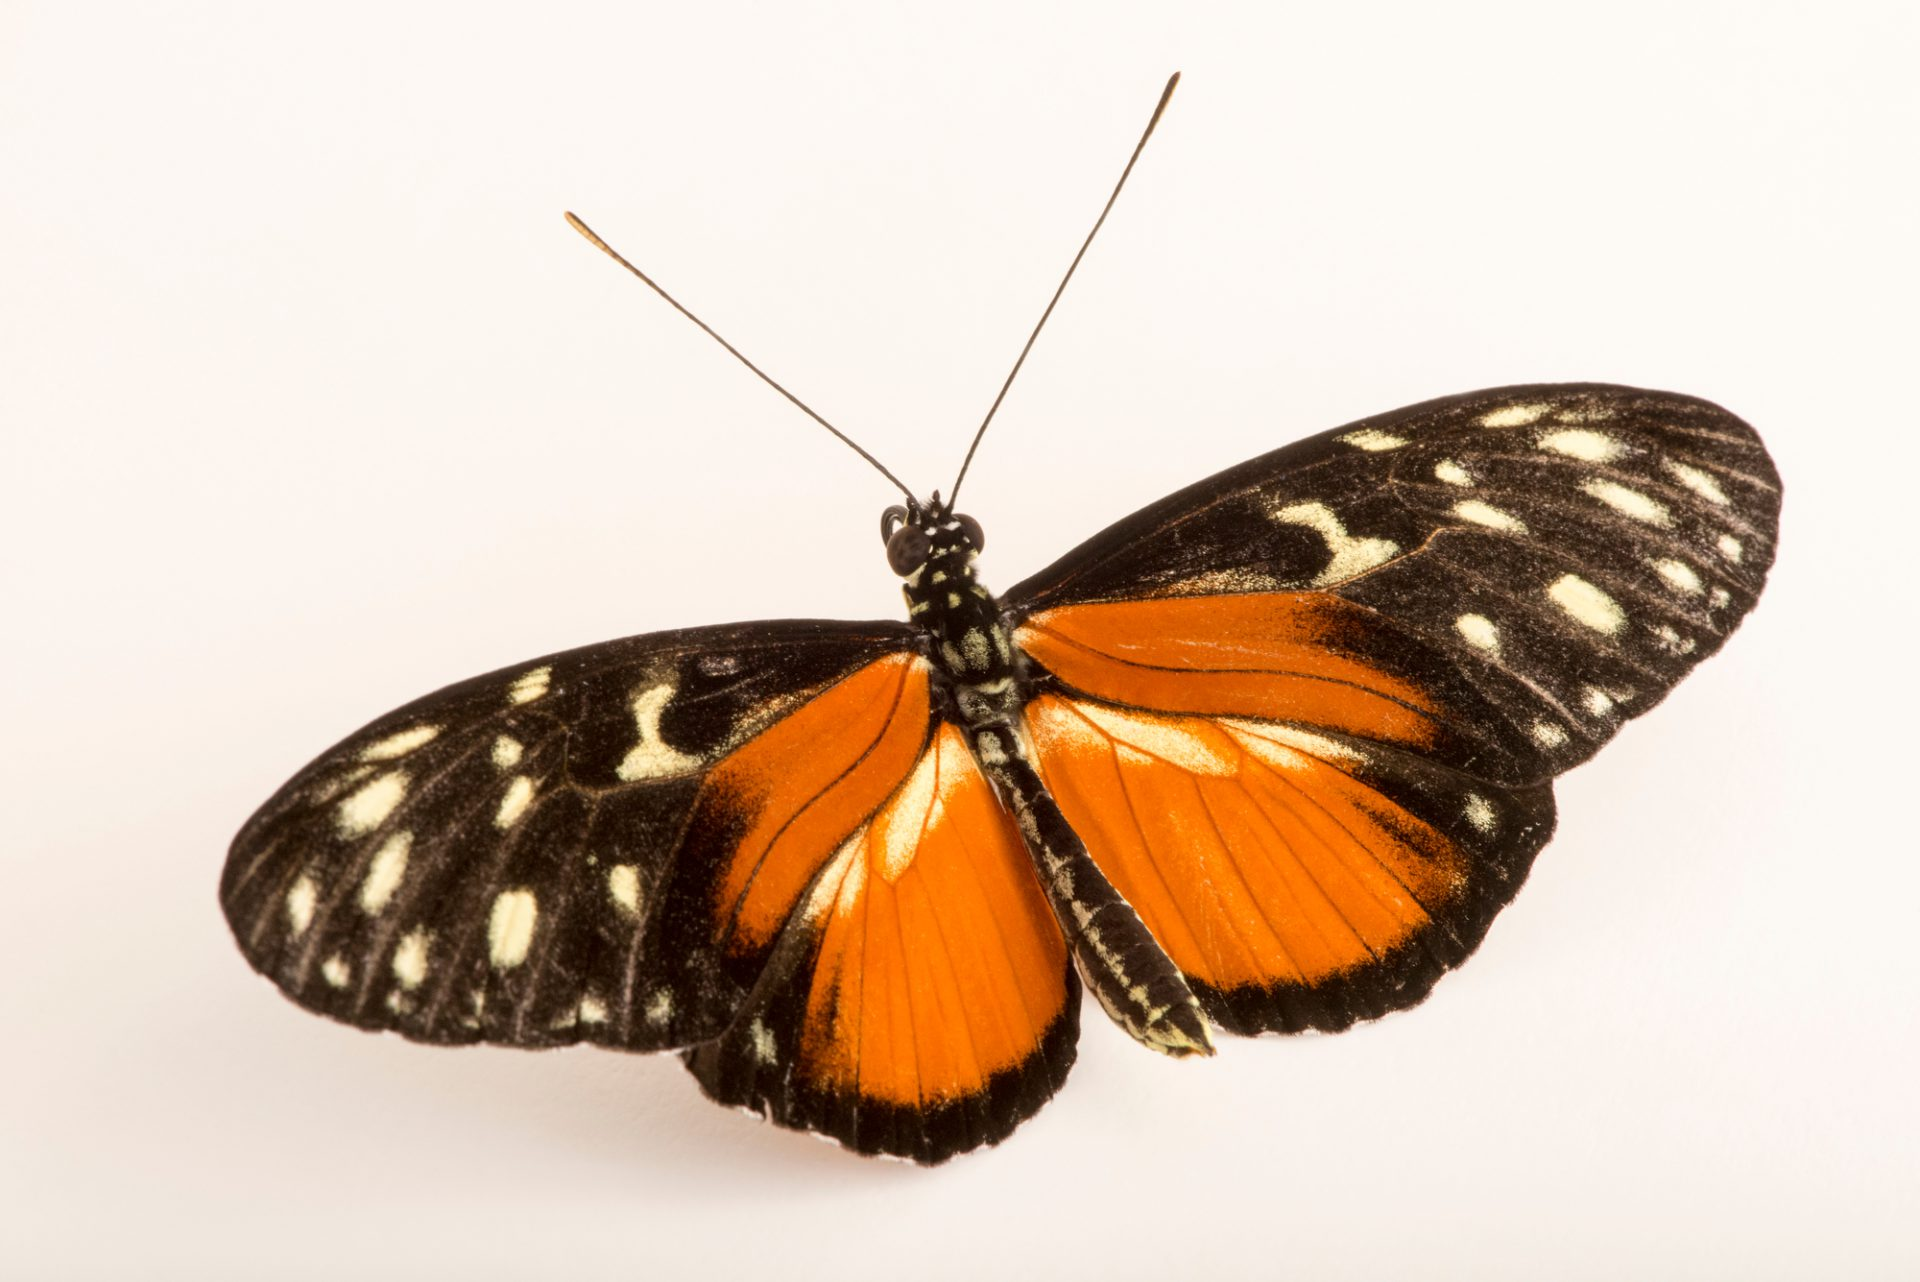 Photo: An unidentified butterfly at the Omaha Zoo.